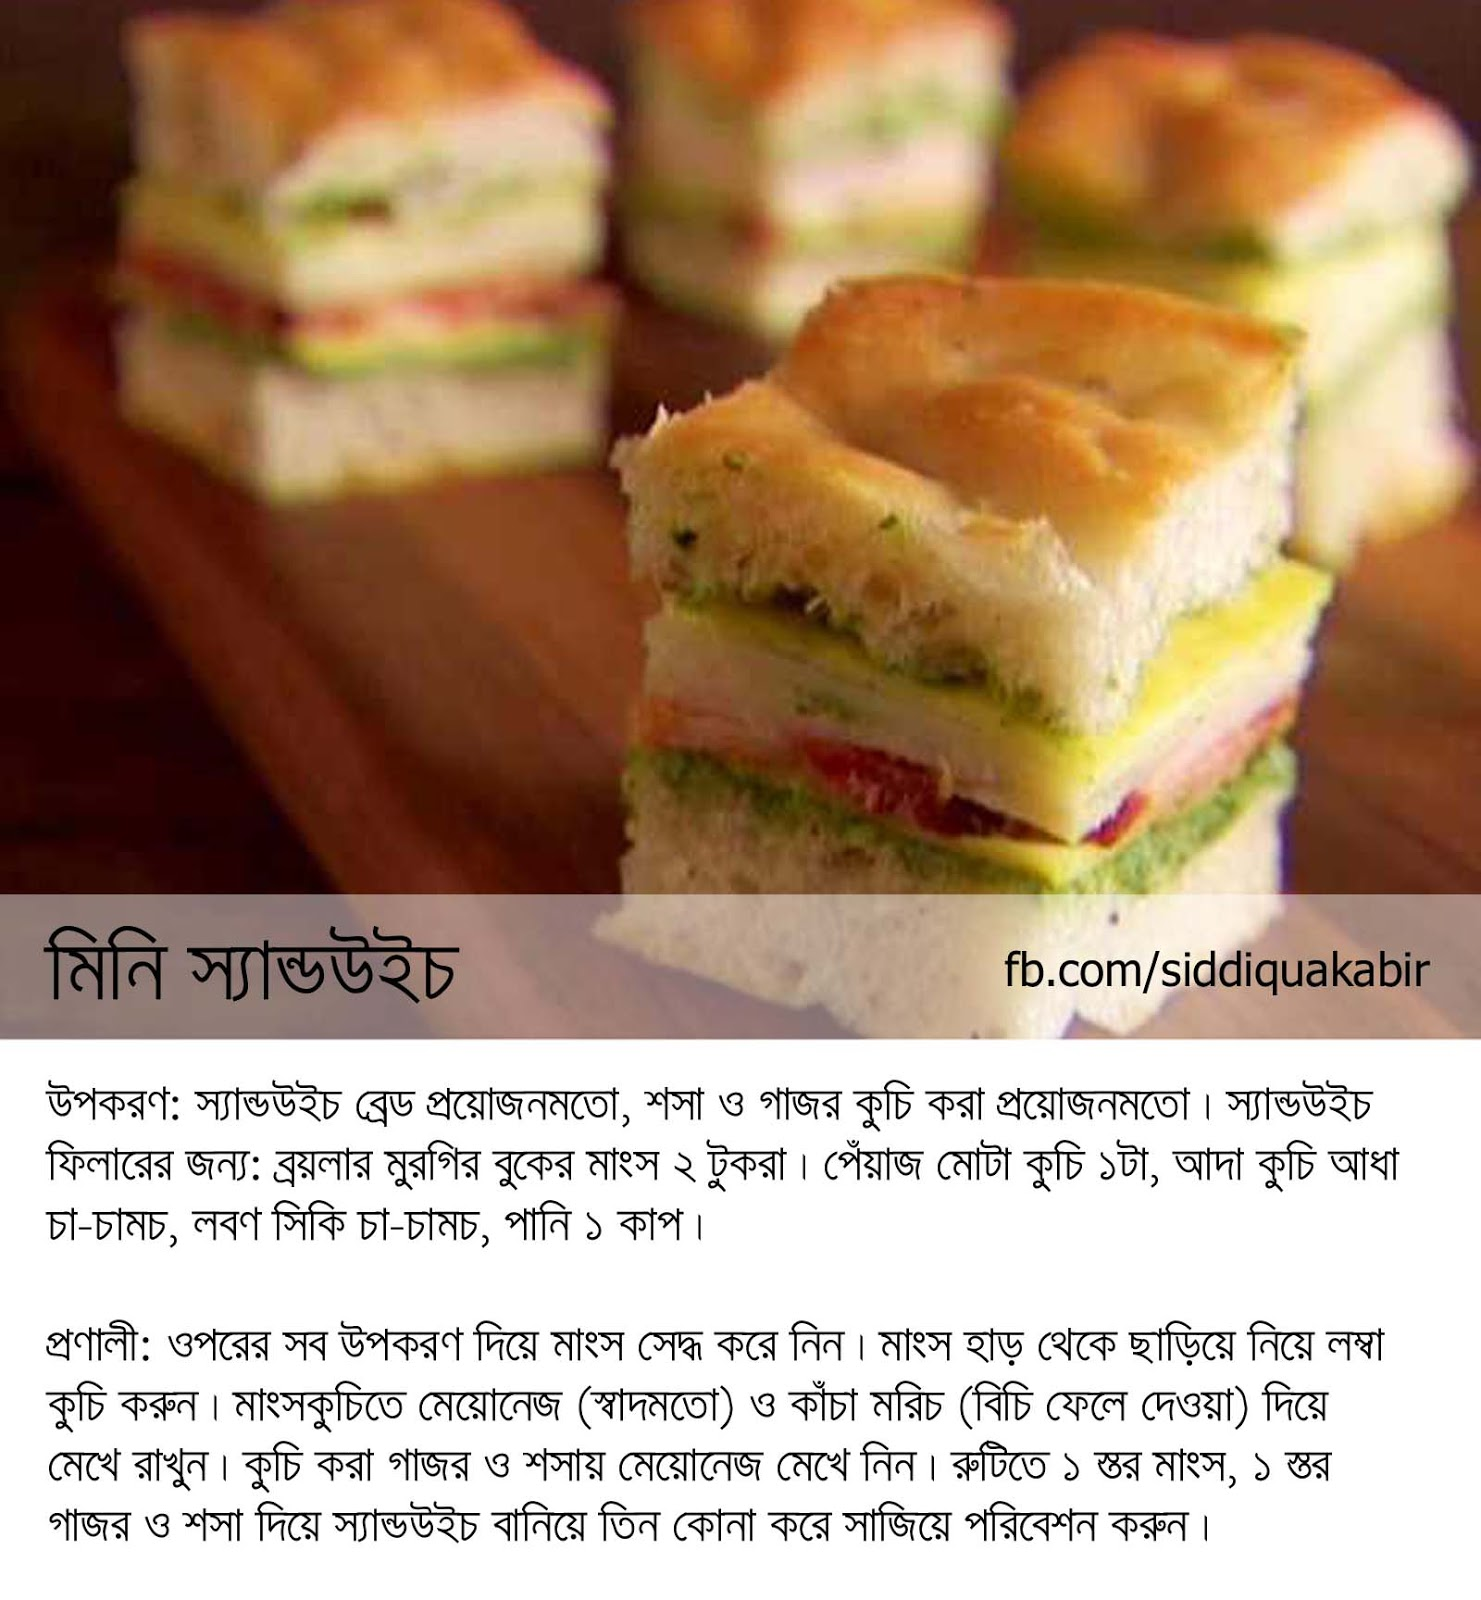 Siddika kabir recipe chekwiki mini sandwiche in font forumfinder Image collections